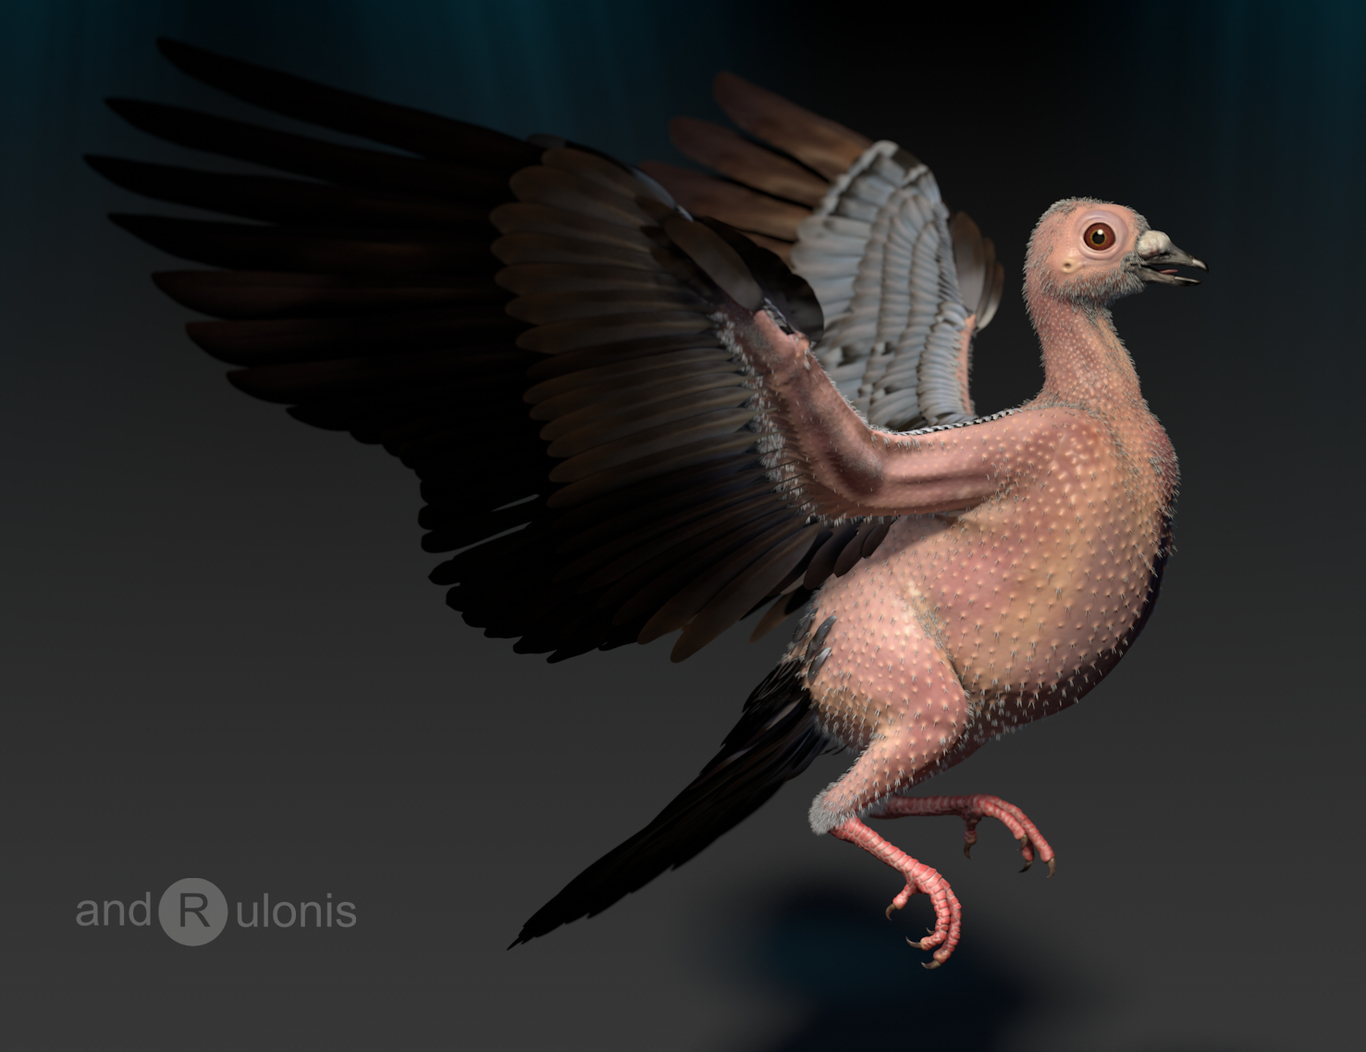 Rulonis feral pigeon 1 d4f6d861 9jus